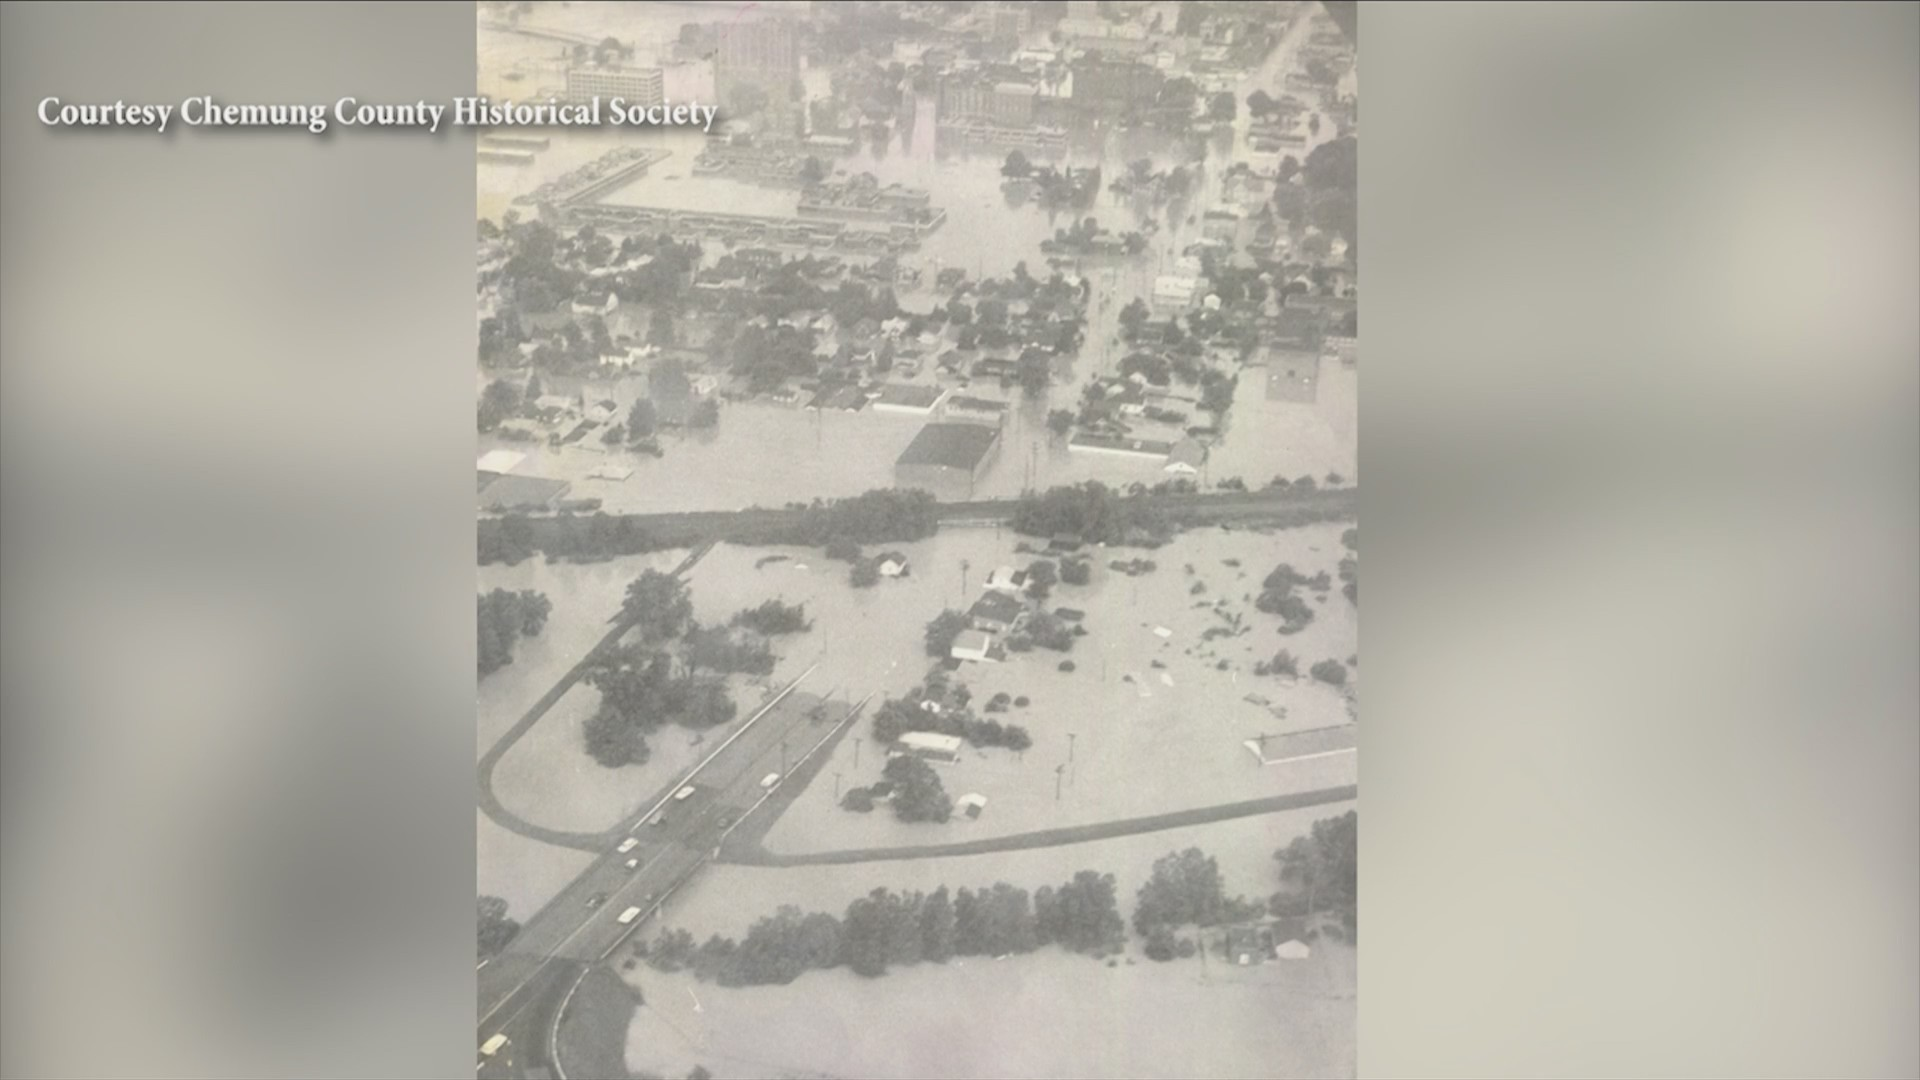 47 years since flood of 1972